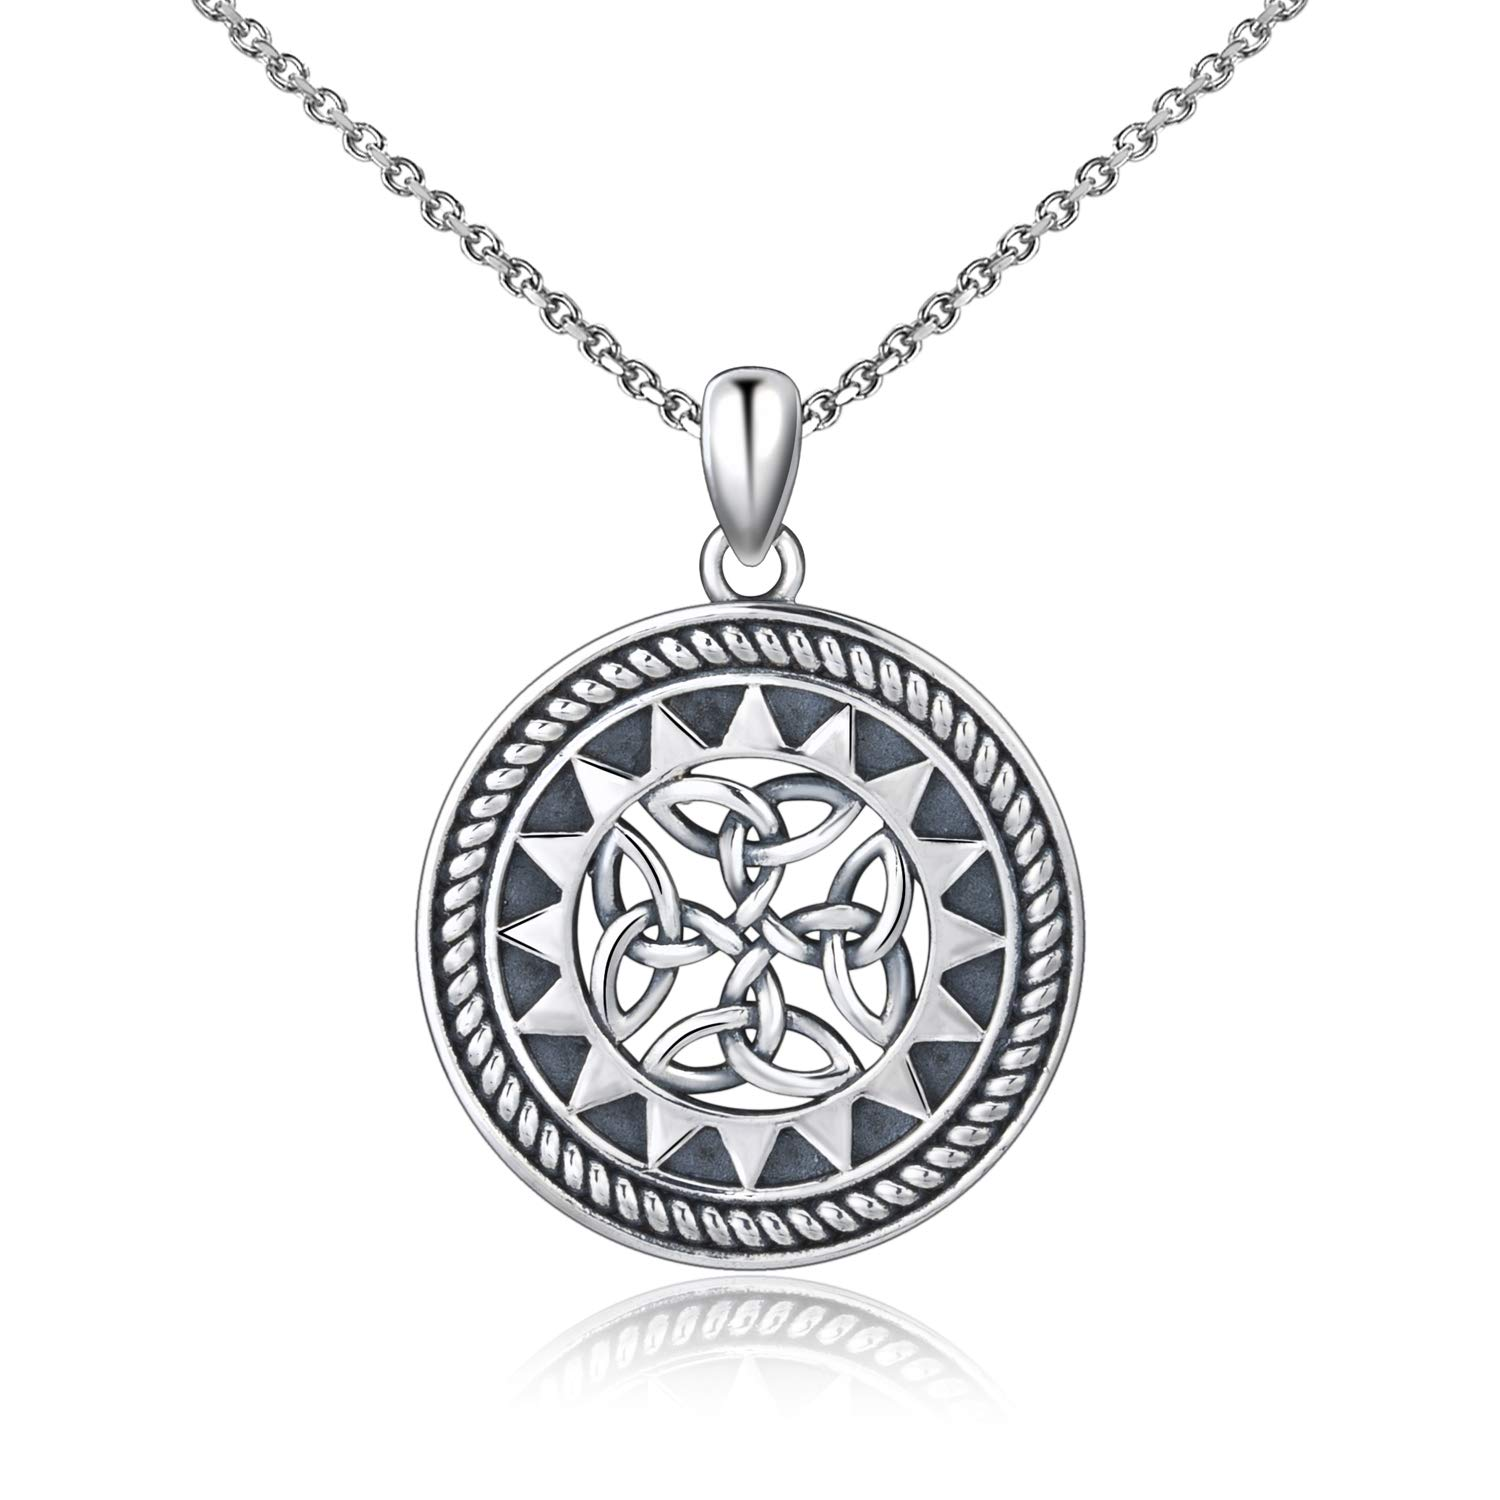 5f43f320d3f5 MANBU Jewelry Medallion Celtic Knot or Classical Cross 925 Sterling Silver  Necklace Pendant Gifts for Women Girls